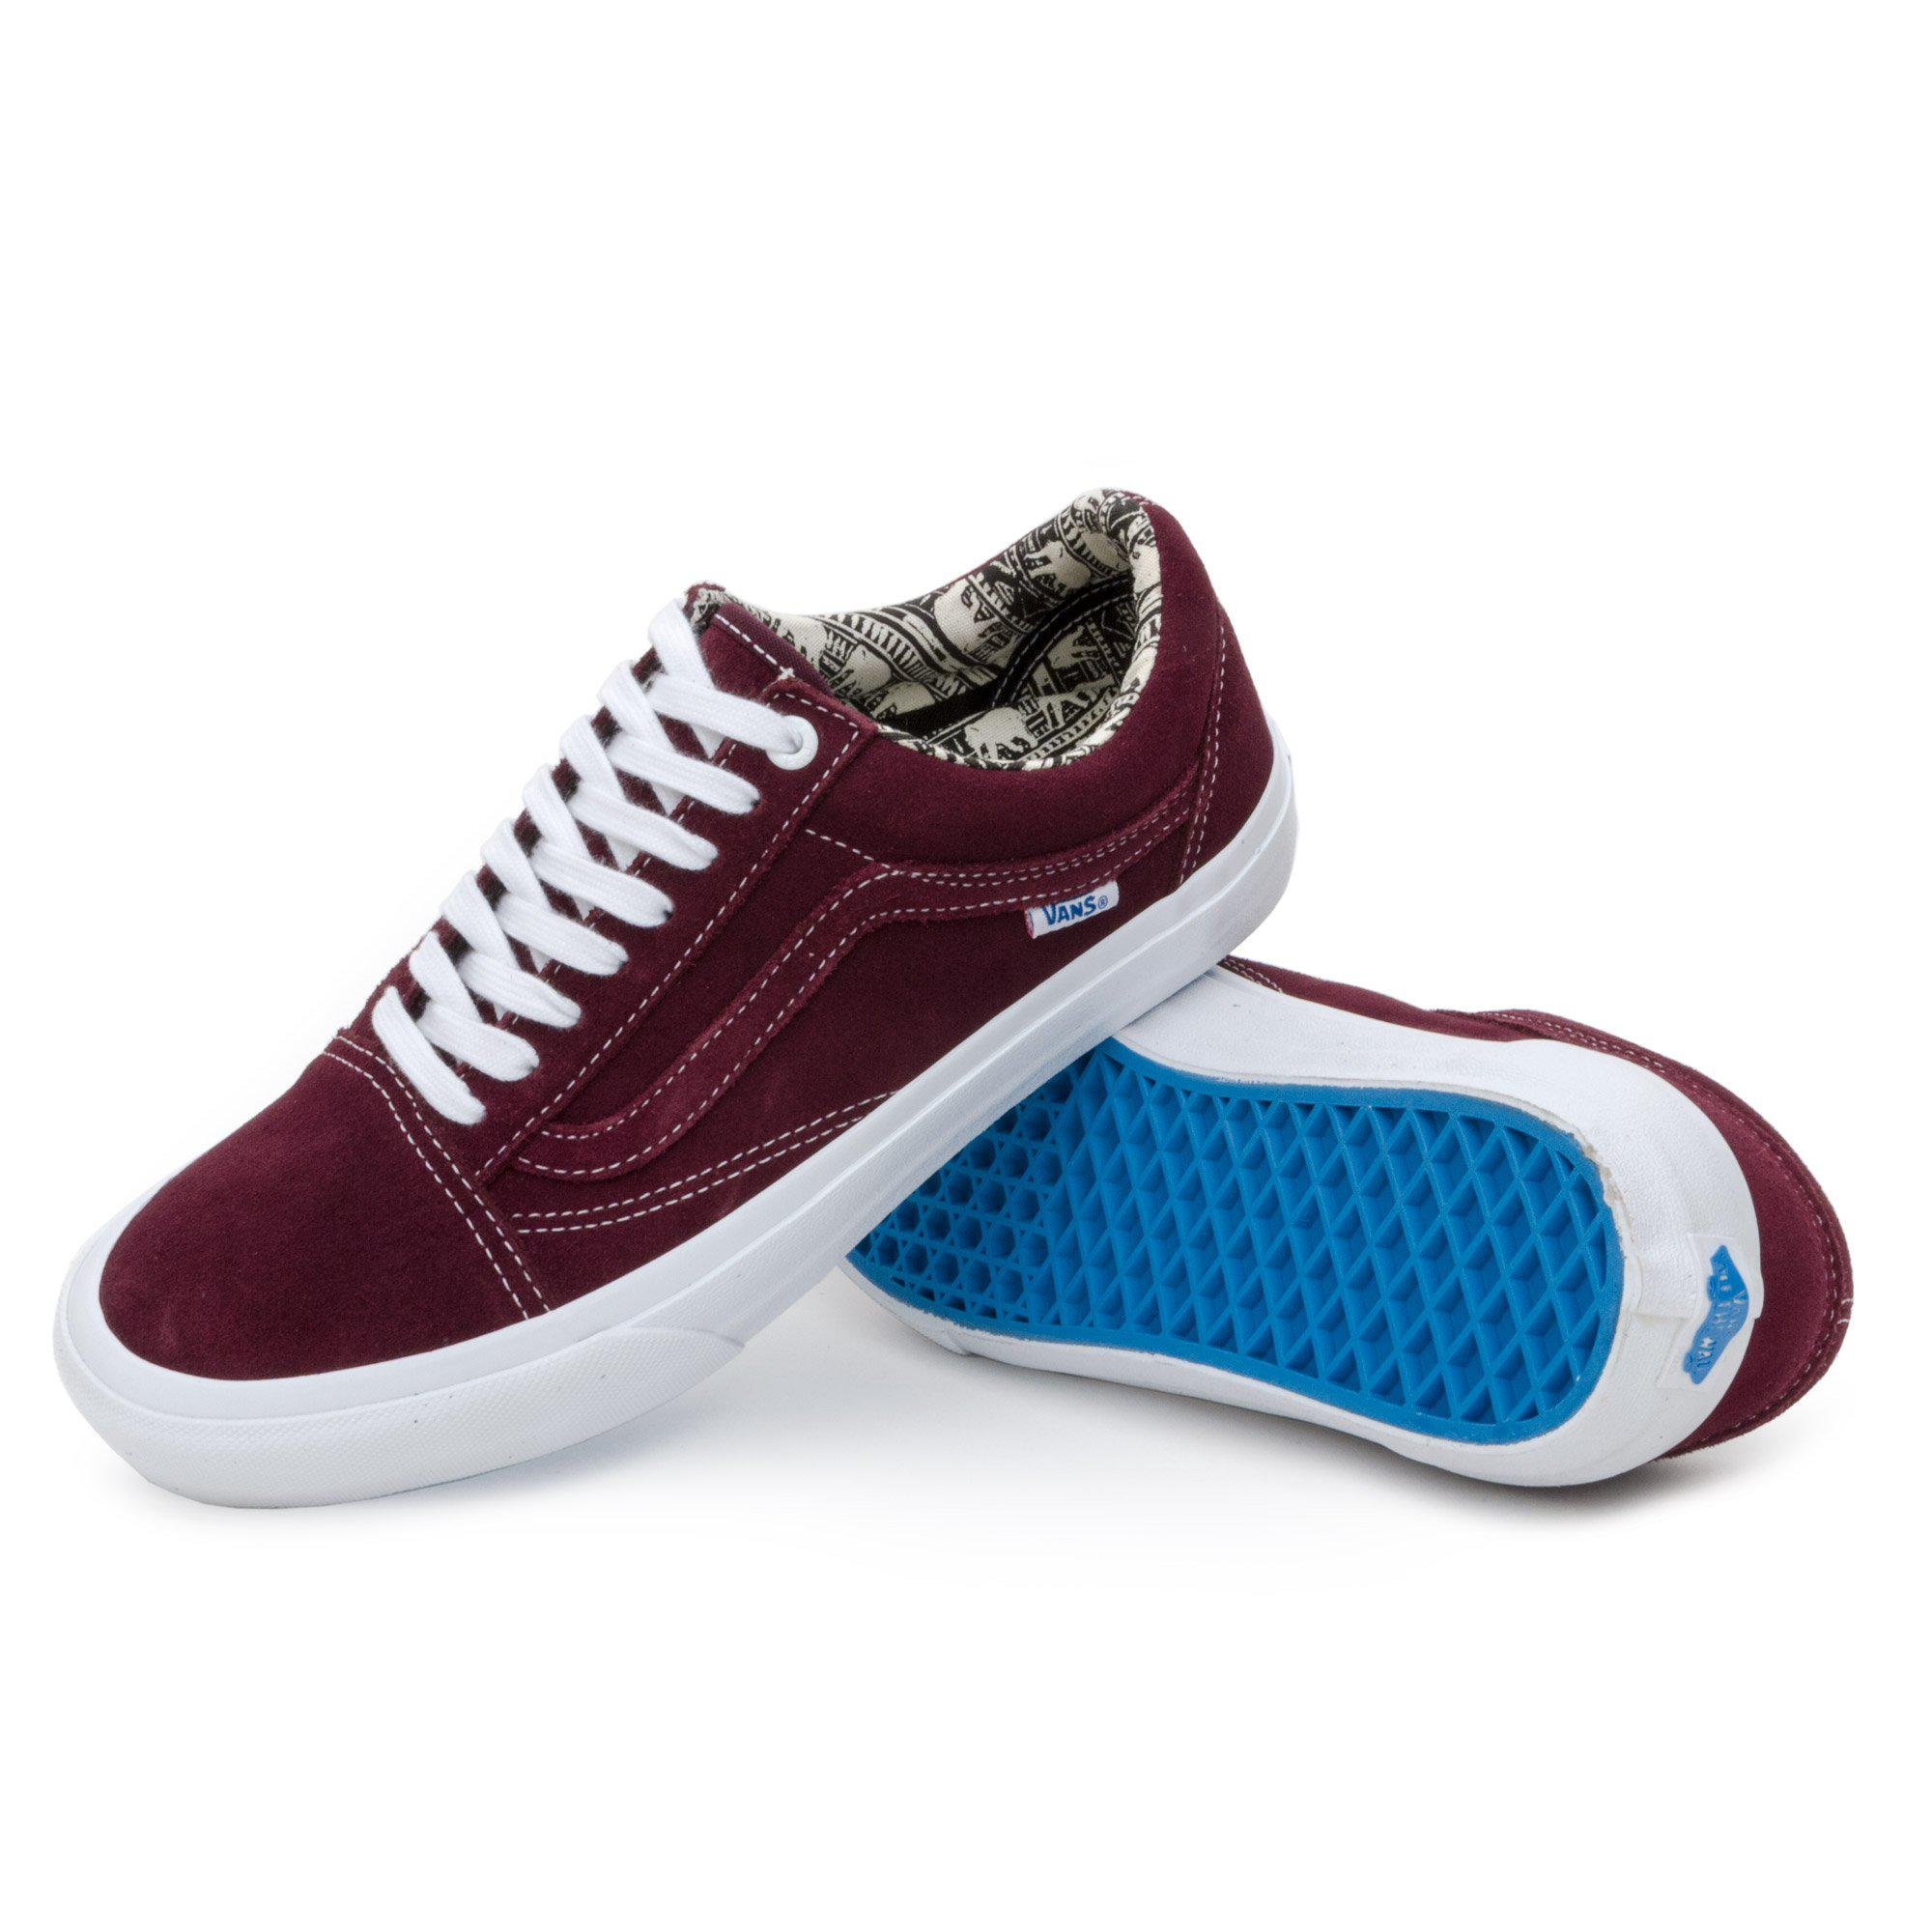 e92a6d389516 Vans - Multicolor Old Skool Pro Ray Barbee Shoes for Men - Lyst. View  fullscreen